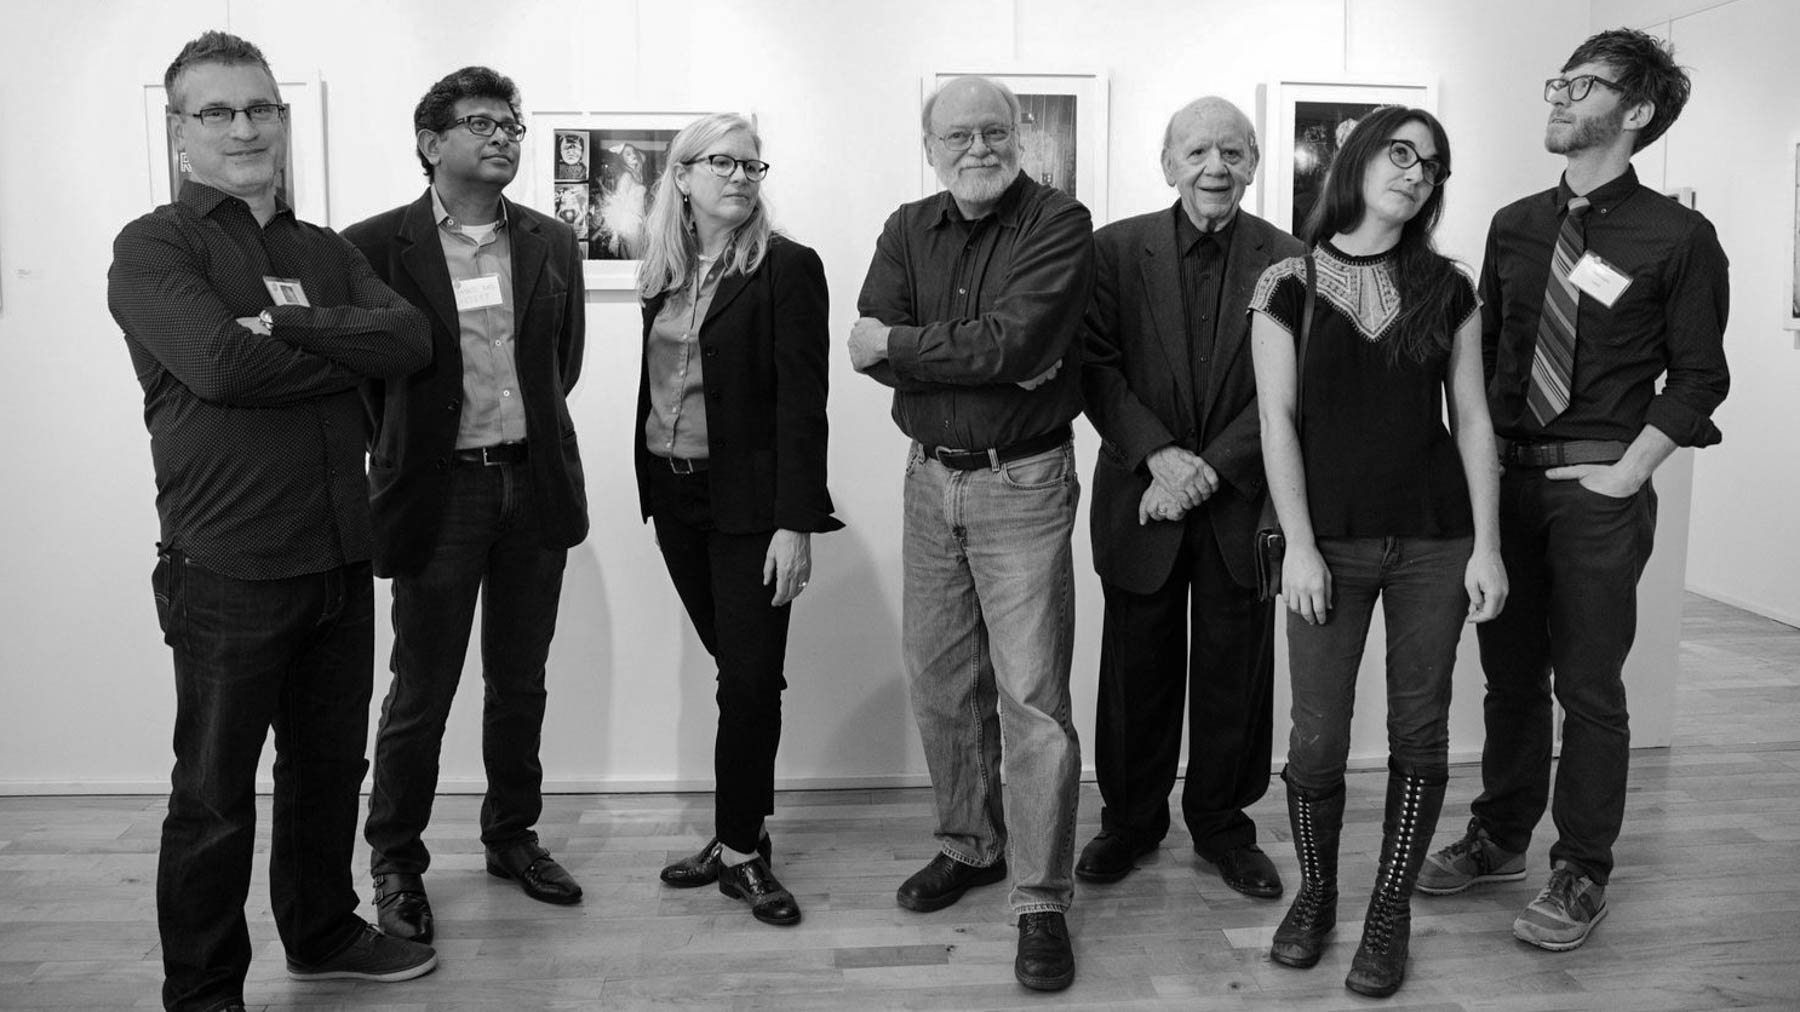 APG Director and patrons with the Portfolio 2017 exhibition juror and artists